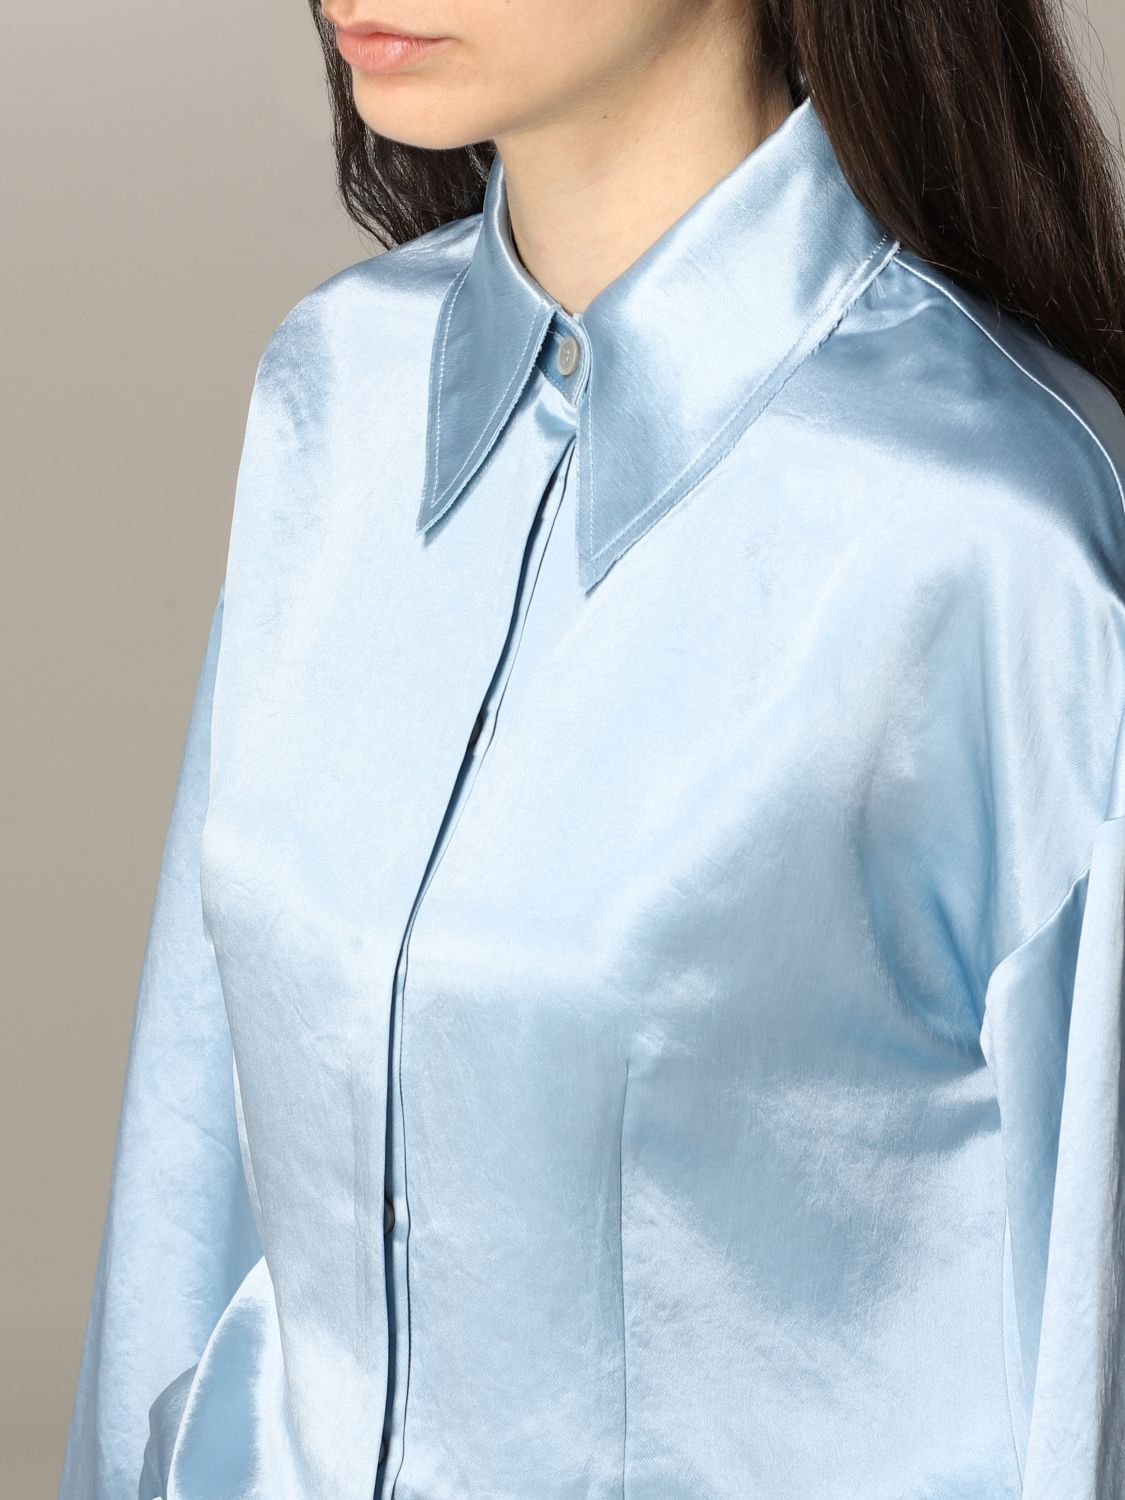 Shirt Acne Studios: Acne Studios wide shirt gnawed blue 5